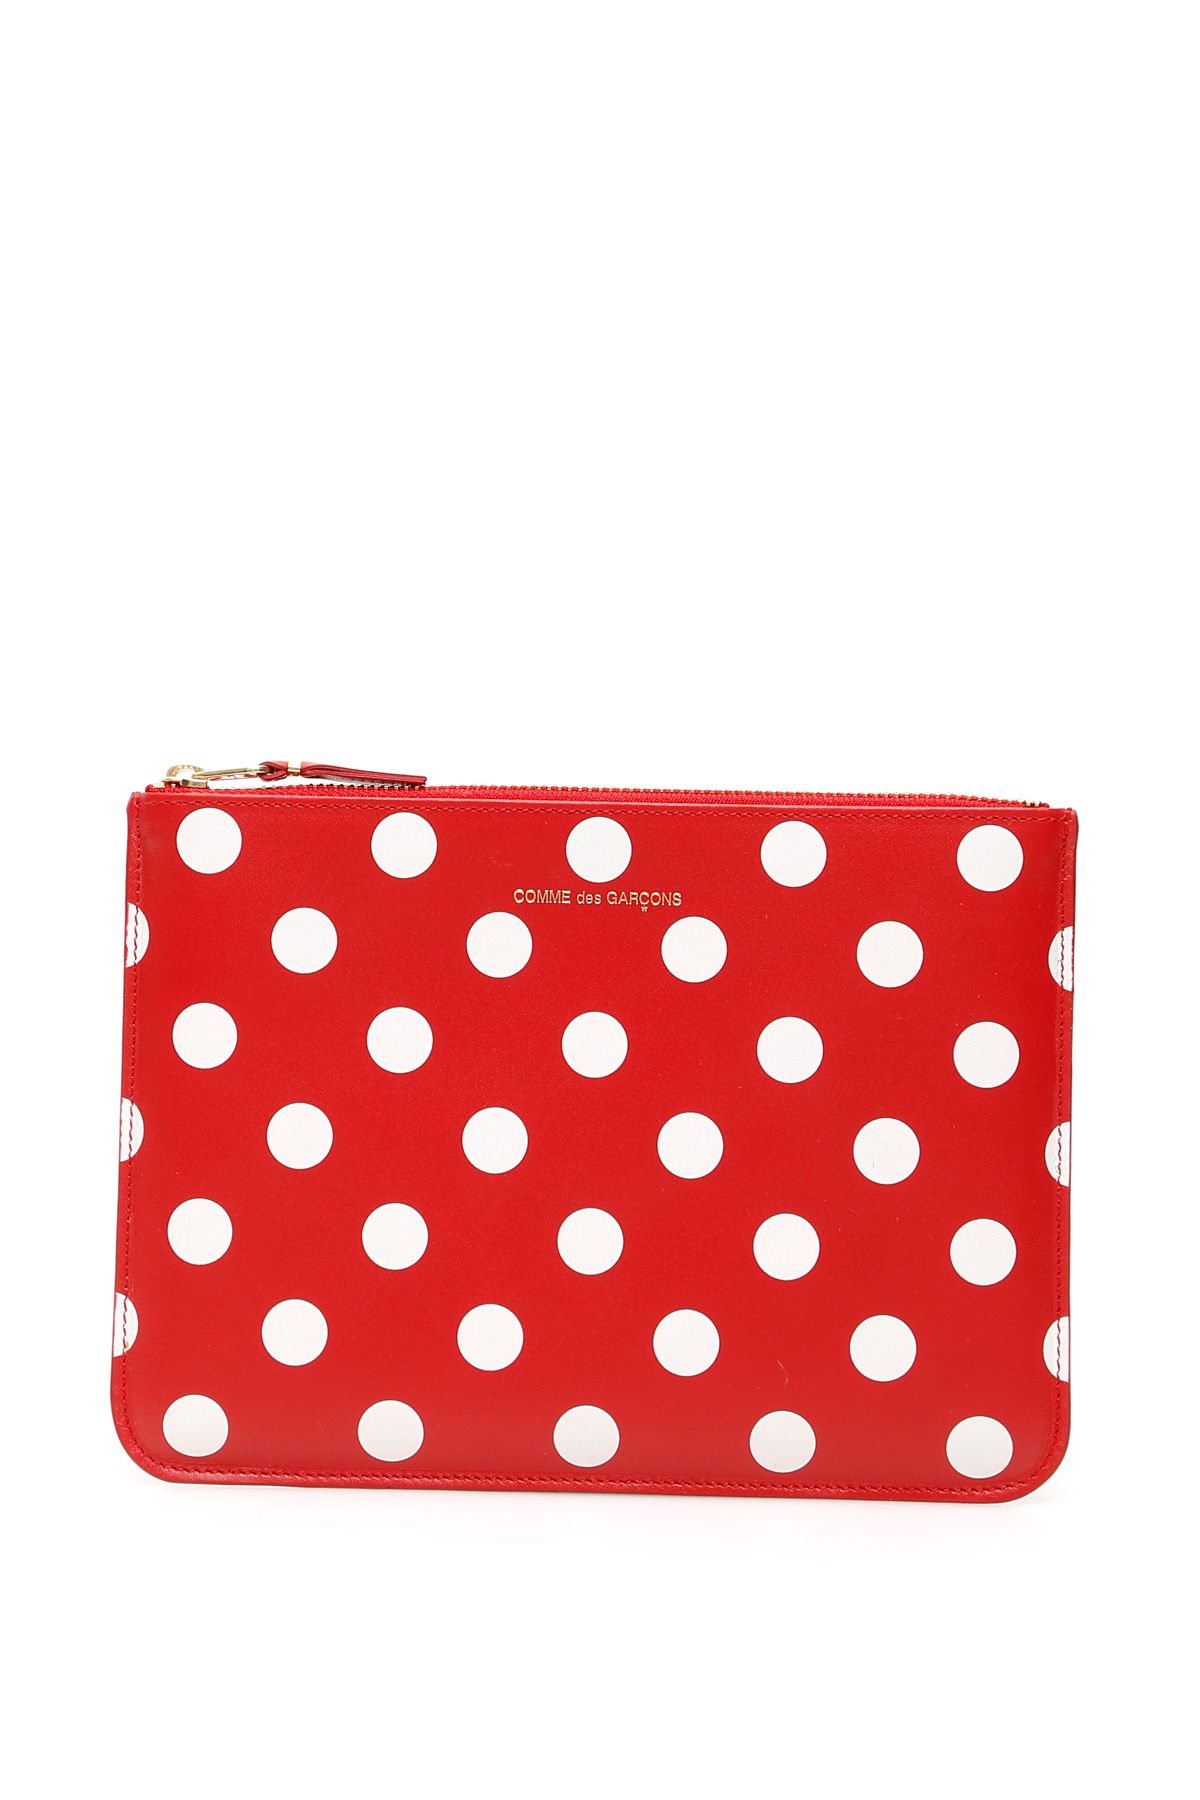 COMME DES GARCONS WALLET POLKA DOTS POUCH OS Red, White Leather